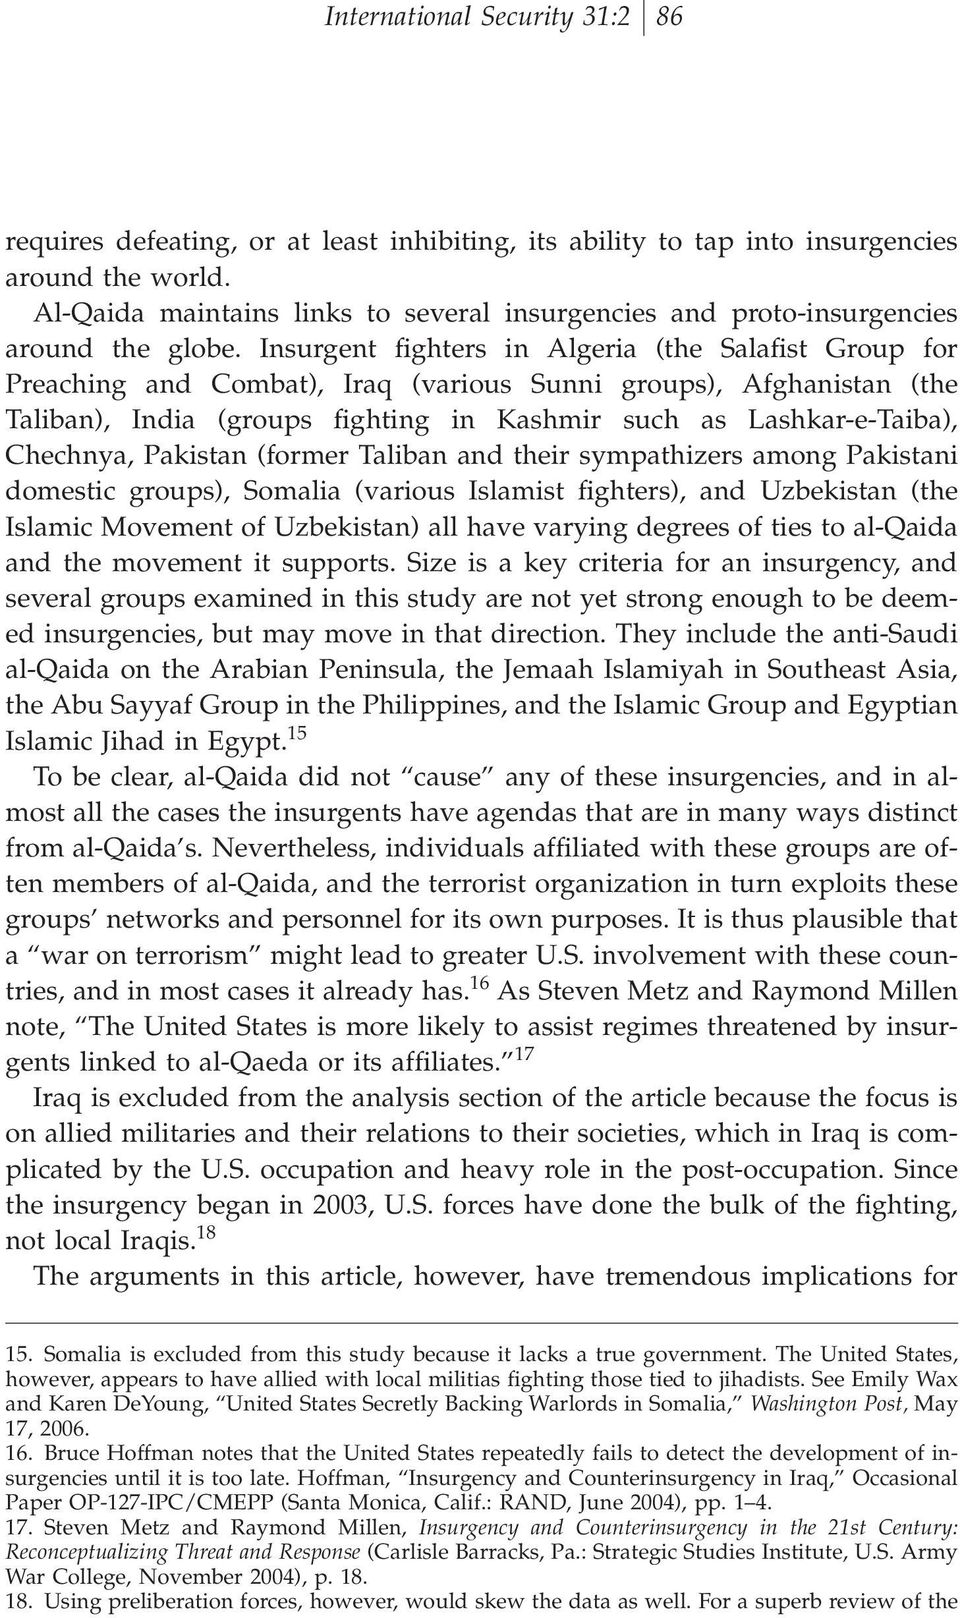 Insurgent ªghters in Algeria (the Salaªst Group for Preaching and Combat), Iraq (various Sunni groups), Afghanistan (the Taliban), India (groups ªghting in Kashmir such as Lashkar-e-Taiba), Chechnya,